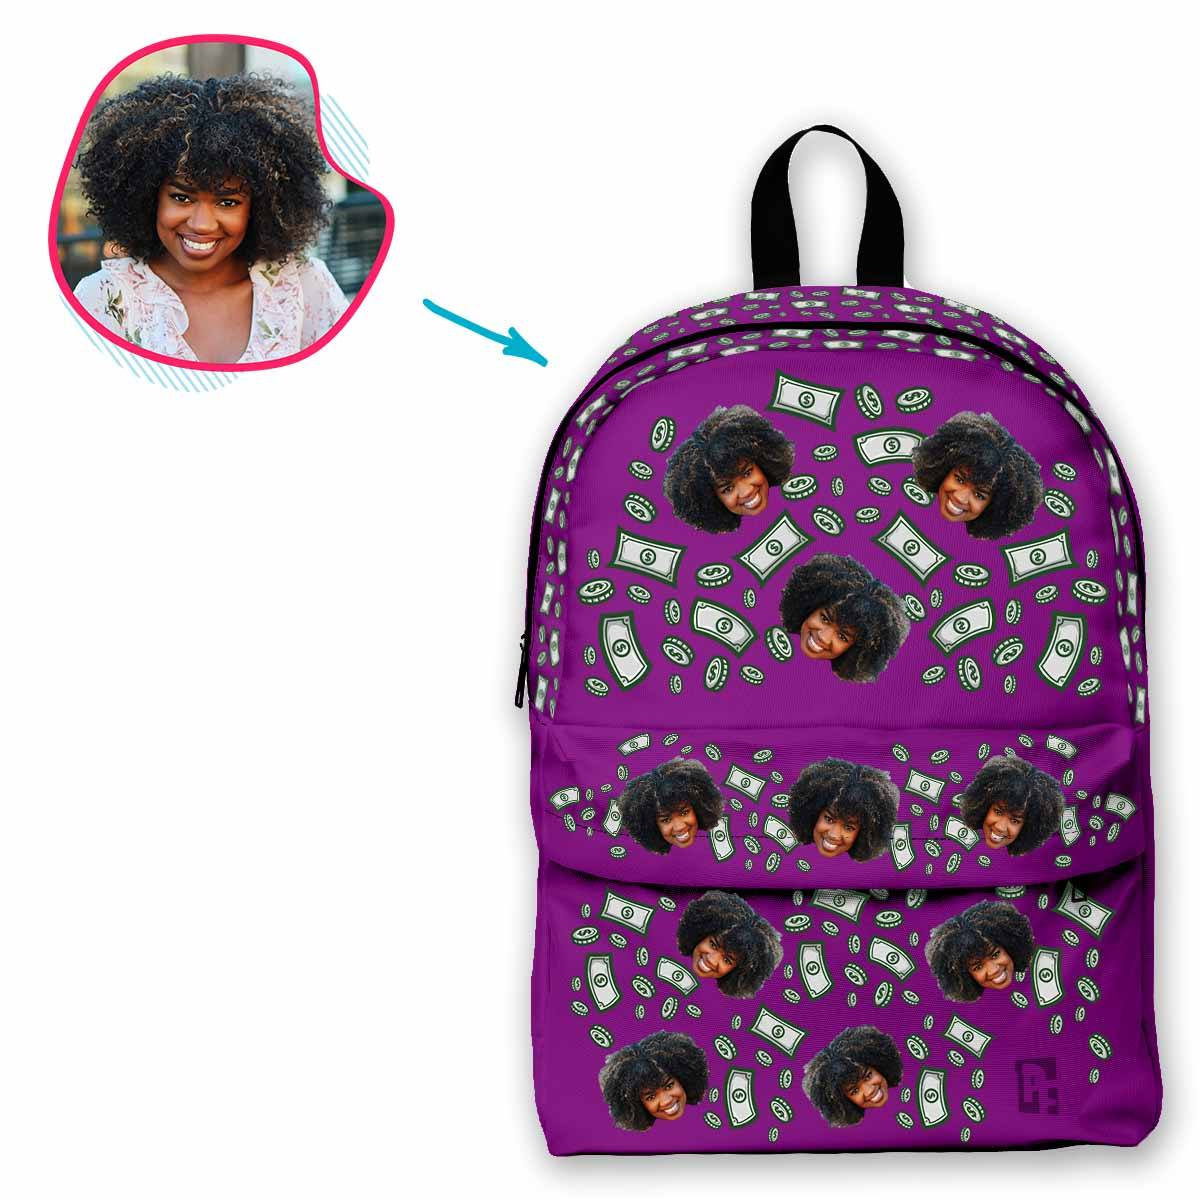 purple Money classic backpack personalized with photo of face printed on it